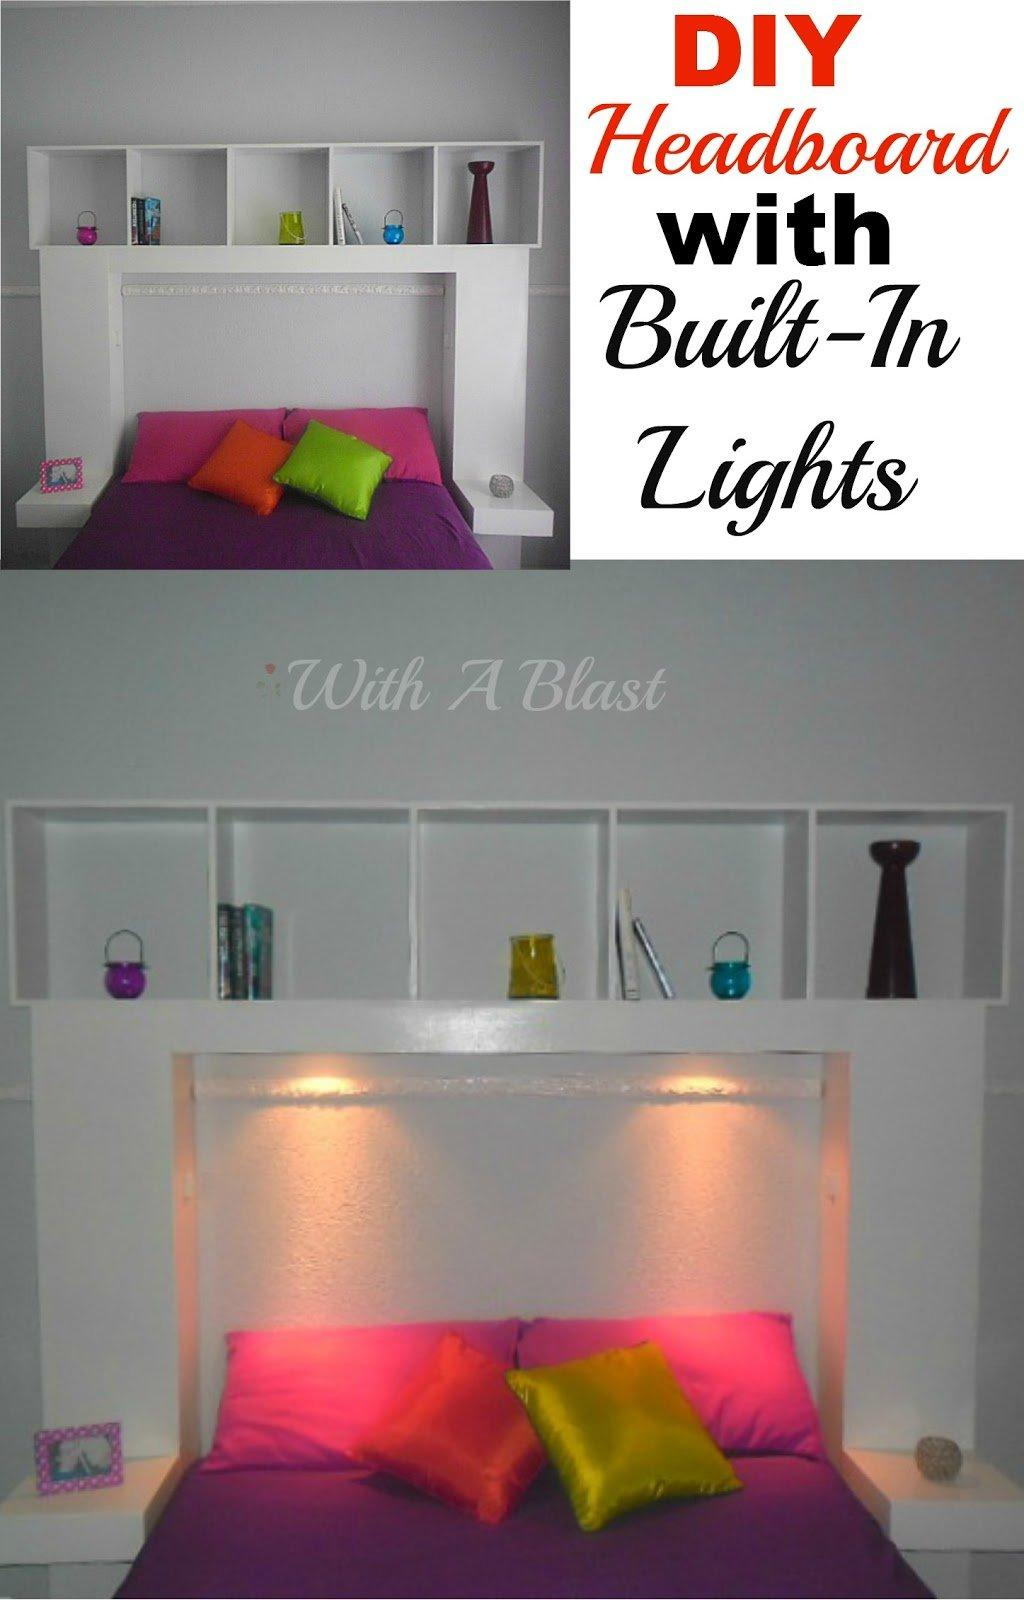 DIY Headboard with Built-In LightsP